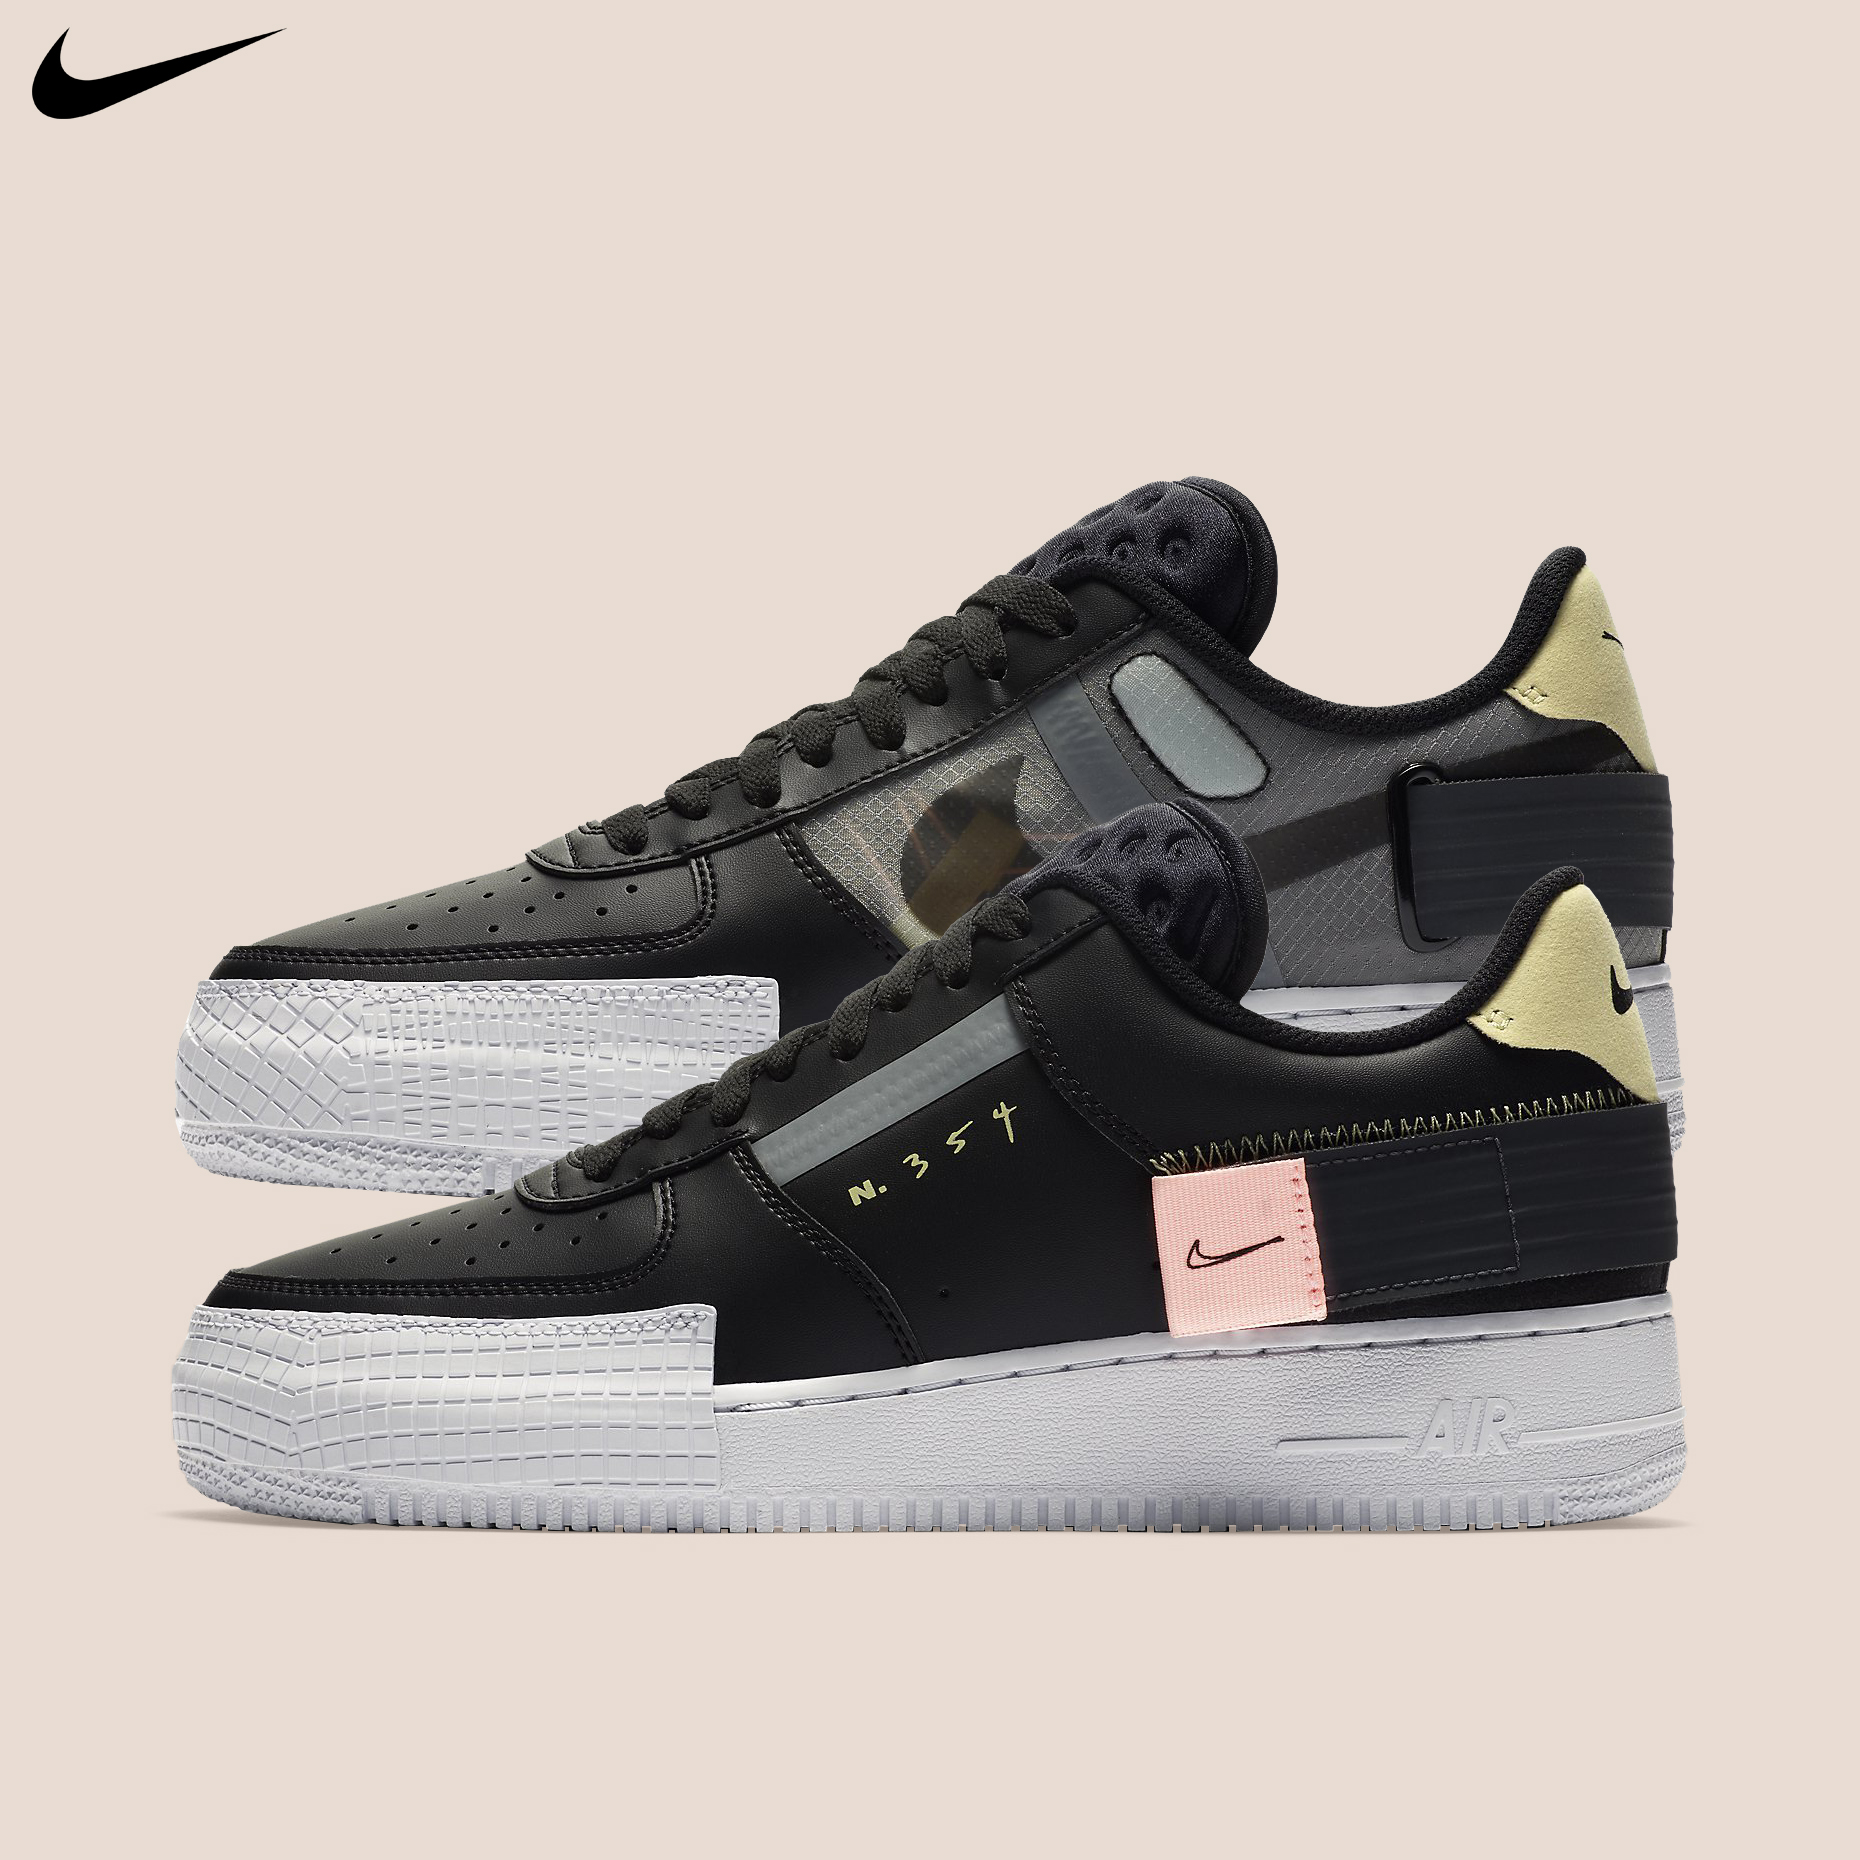 Details about Nike Men's Air Force 1 AF1 Type Black Anthracite Zinnia Pink N354 CI0054 001